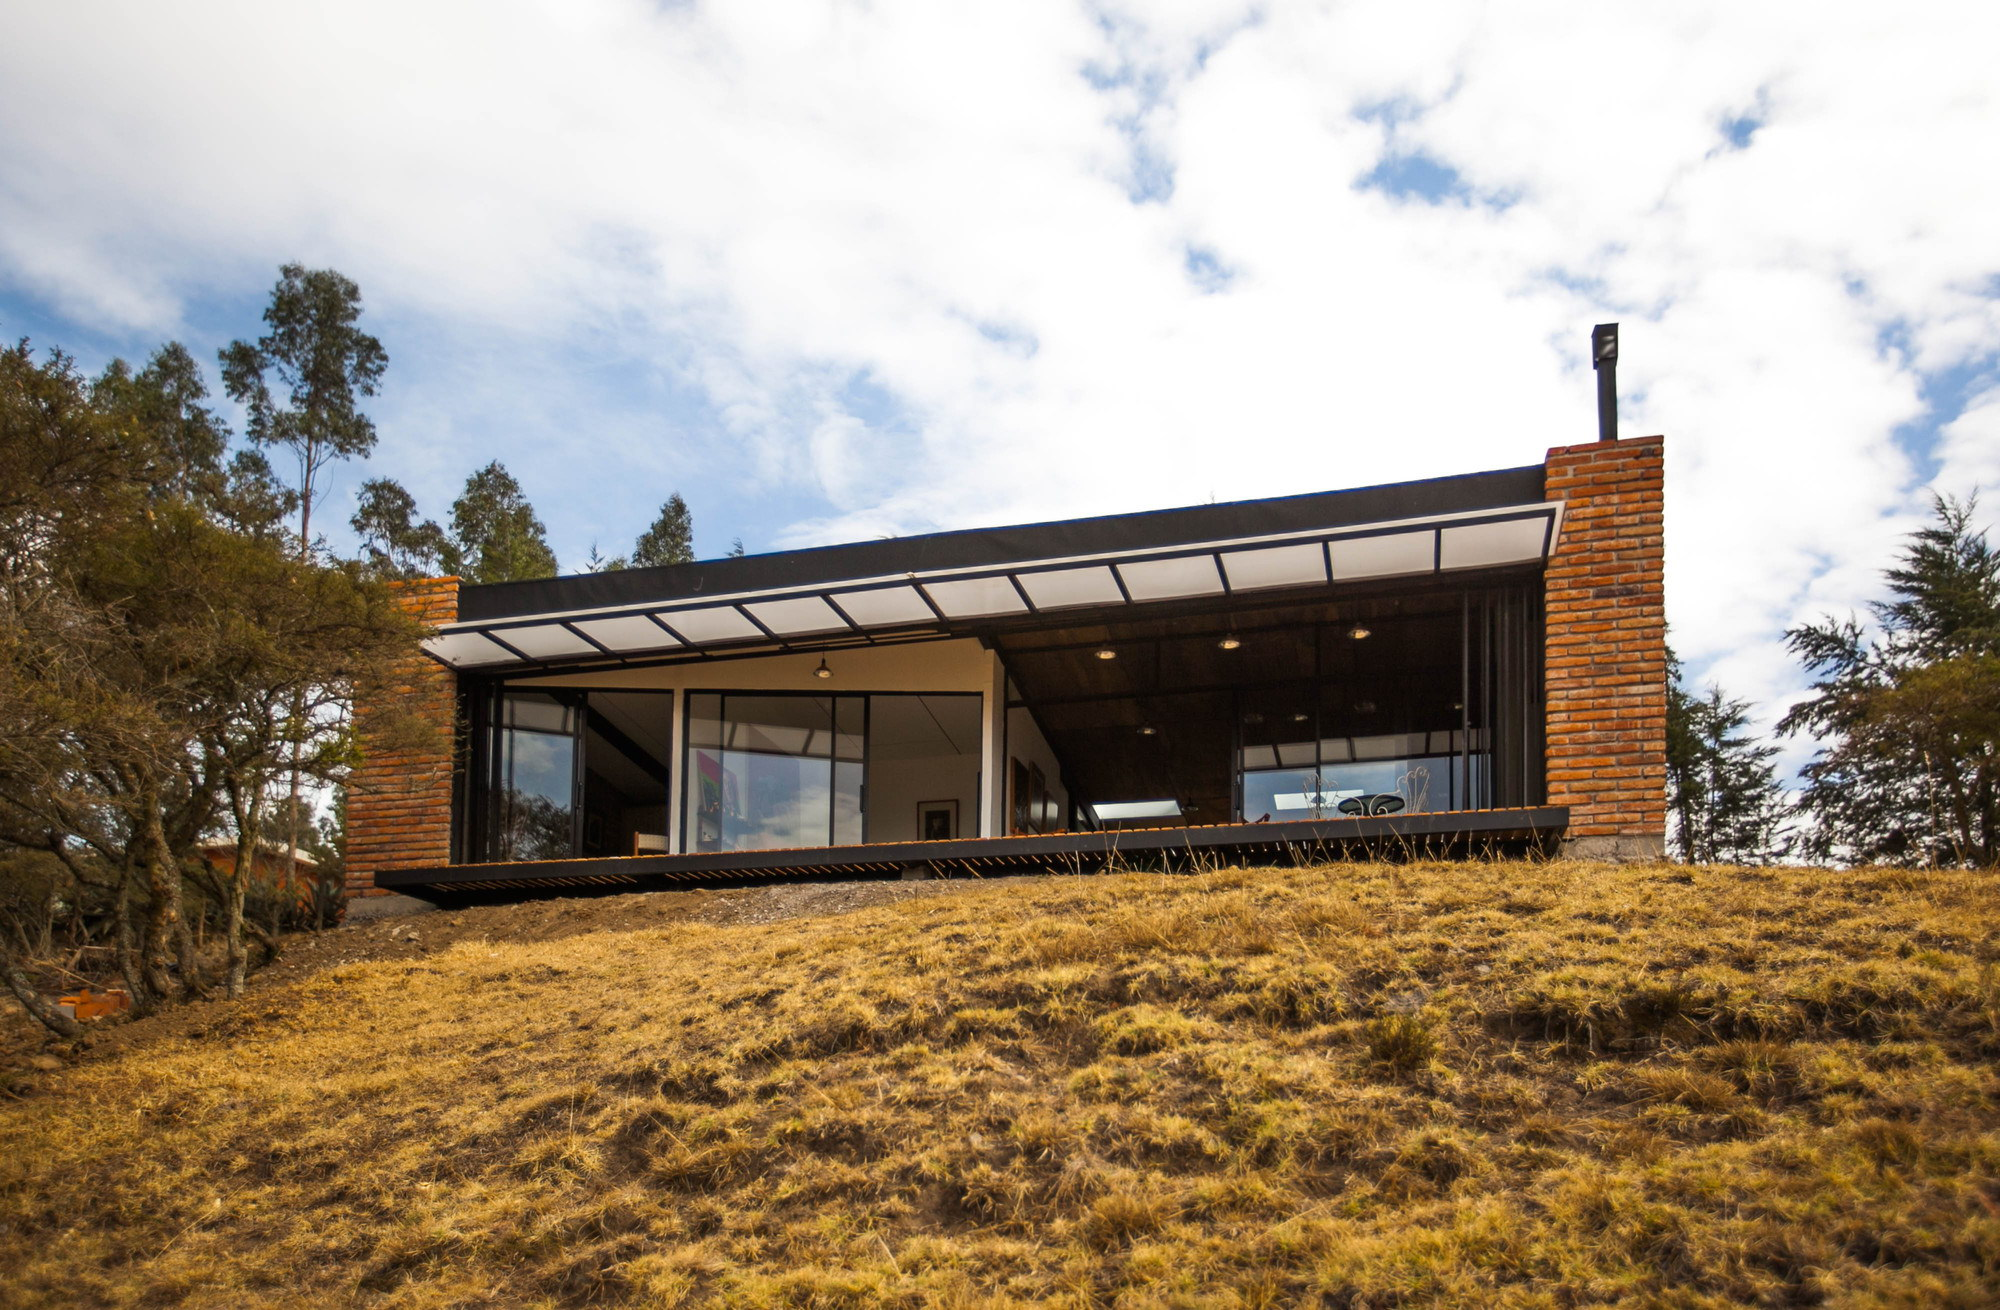 El Guarango House by Bernardo Bustamante